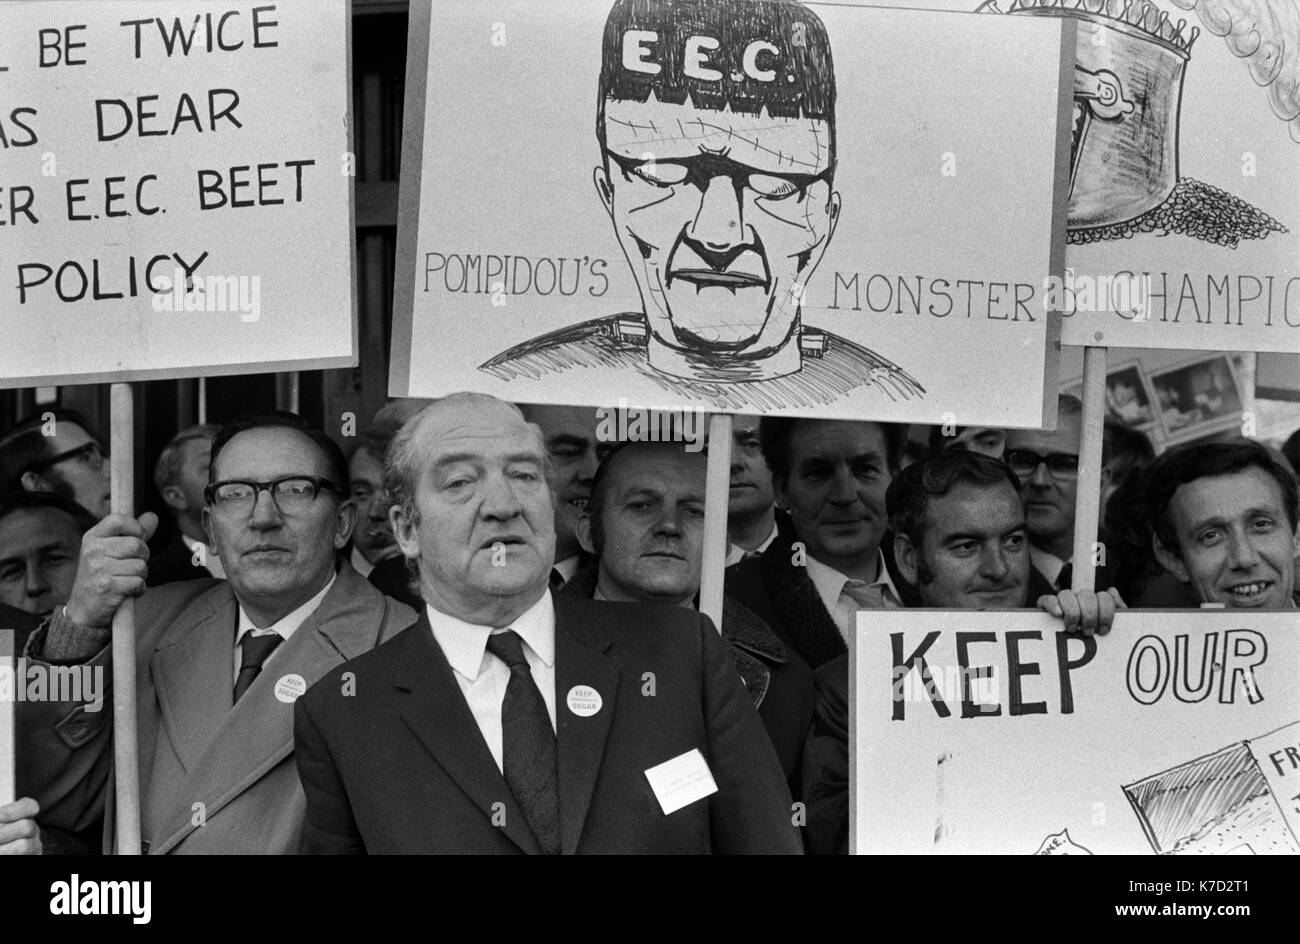 Unions, workers protest again EEC European Economic Union outside the Conservative party conference Winter gardens Blackpool Lancashire 1973. 1970s UK HOMER SYKES. - Stock Image